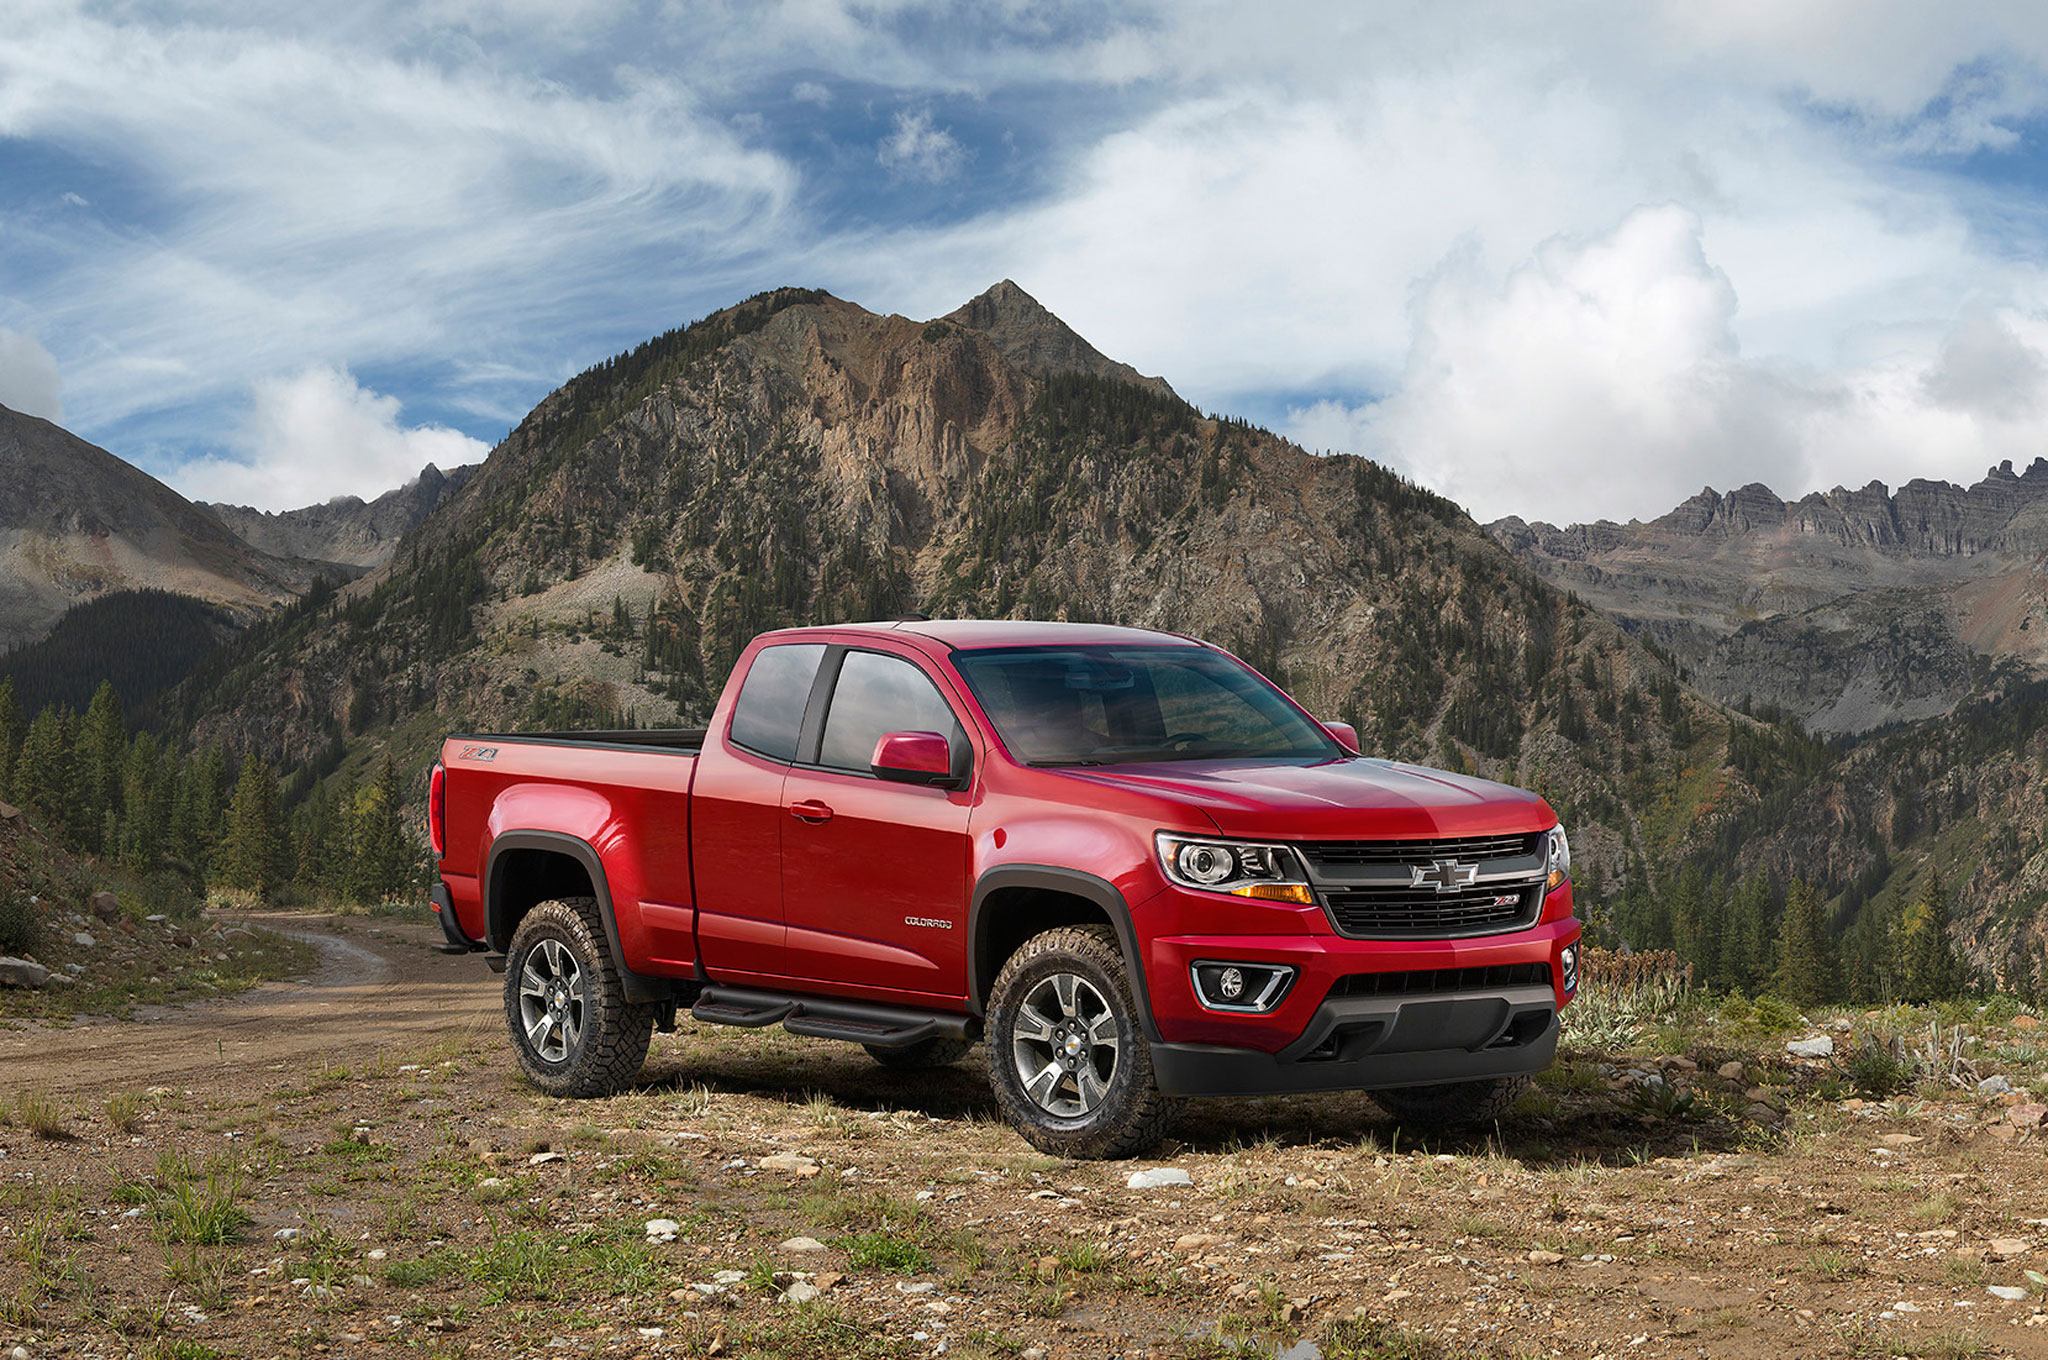 chevrolet debuts off road ready colorado z71 trail boss. Black Bedroom Furniture Sets. Home Design Ideas